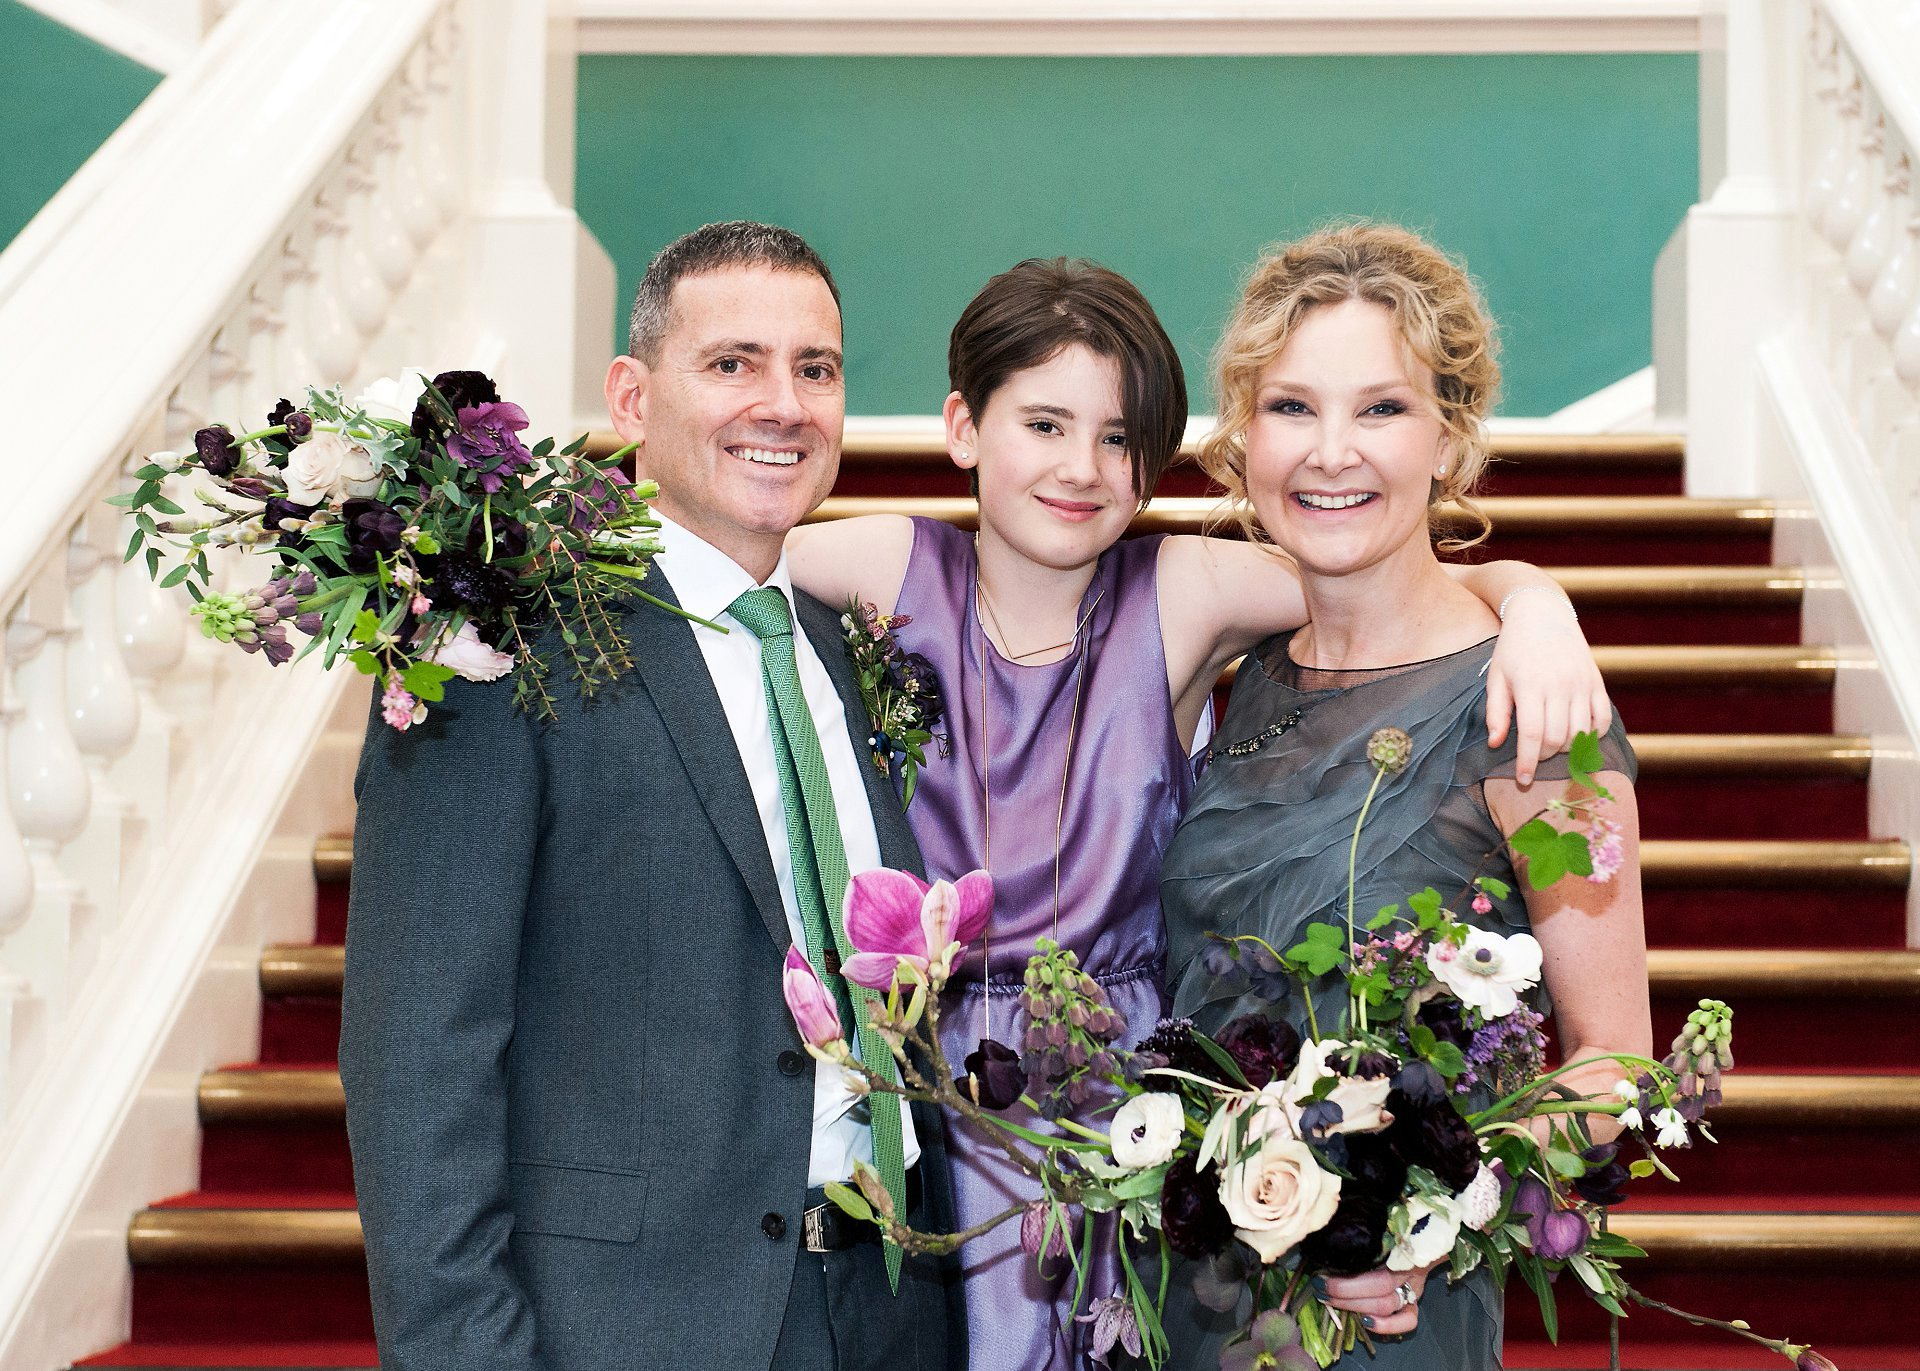 London florist Bloomologie created these bespoke wedding flowers - bridal and bridesmaid's bouquets and groom's buttonhole - for a small wedding in Greenwich Register Office (Woolwich Town Hall) photographed by Emma Duggan